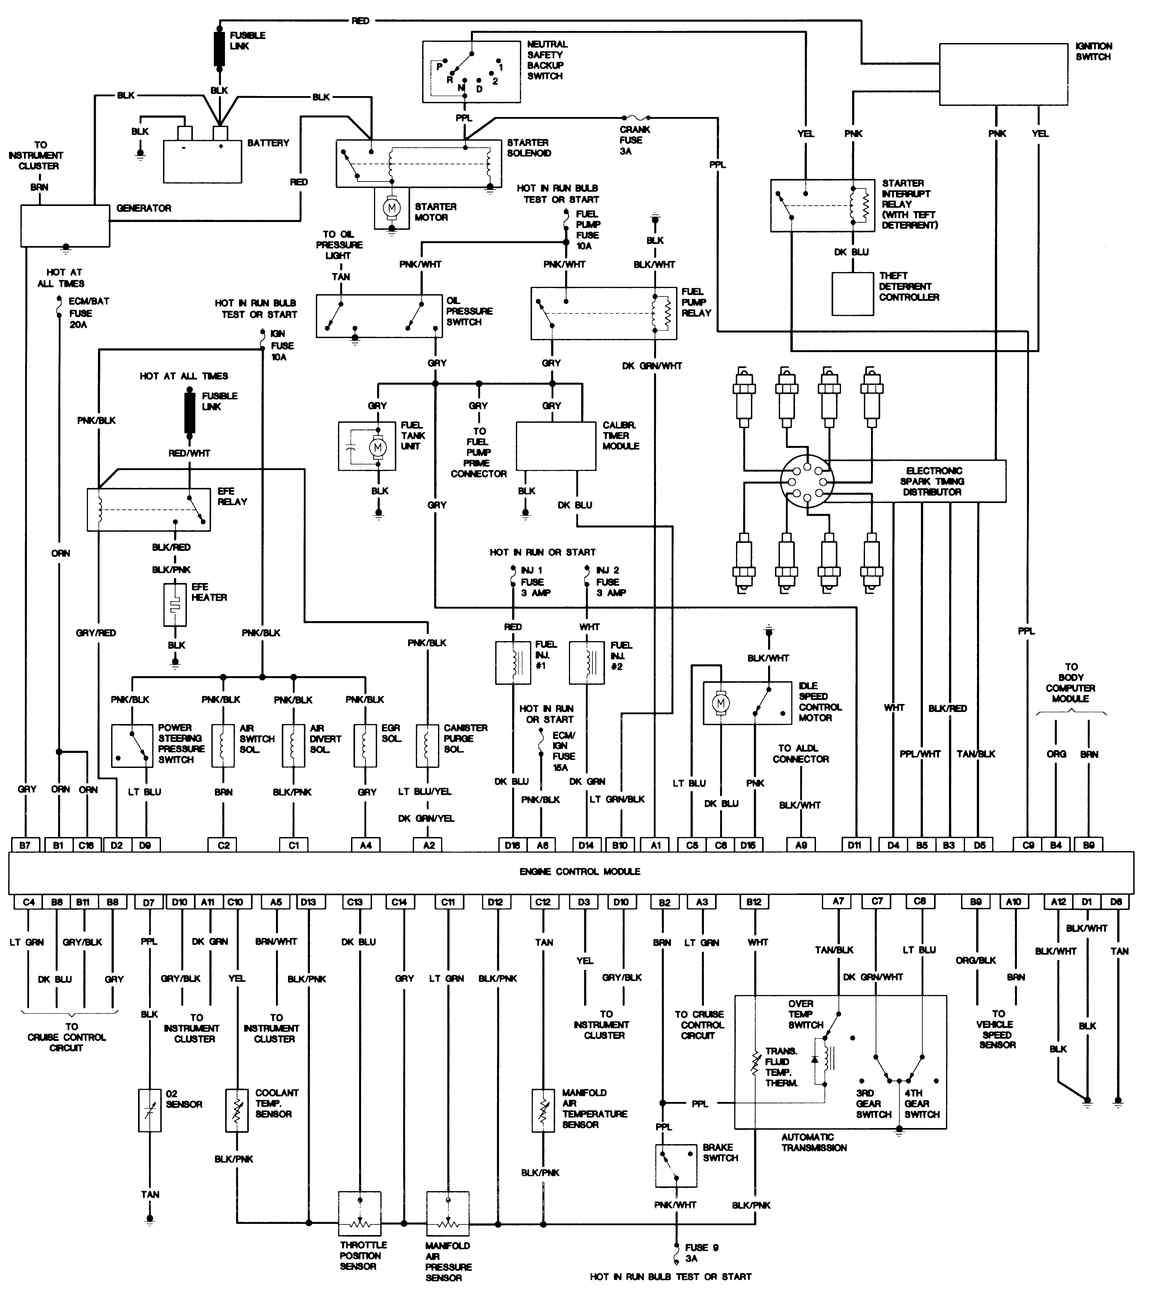 Cadillac Escalade 2002 Ac Wiring Diagram Libraries 2000 Detailed Diagram2002 Box Diagrams Scematic